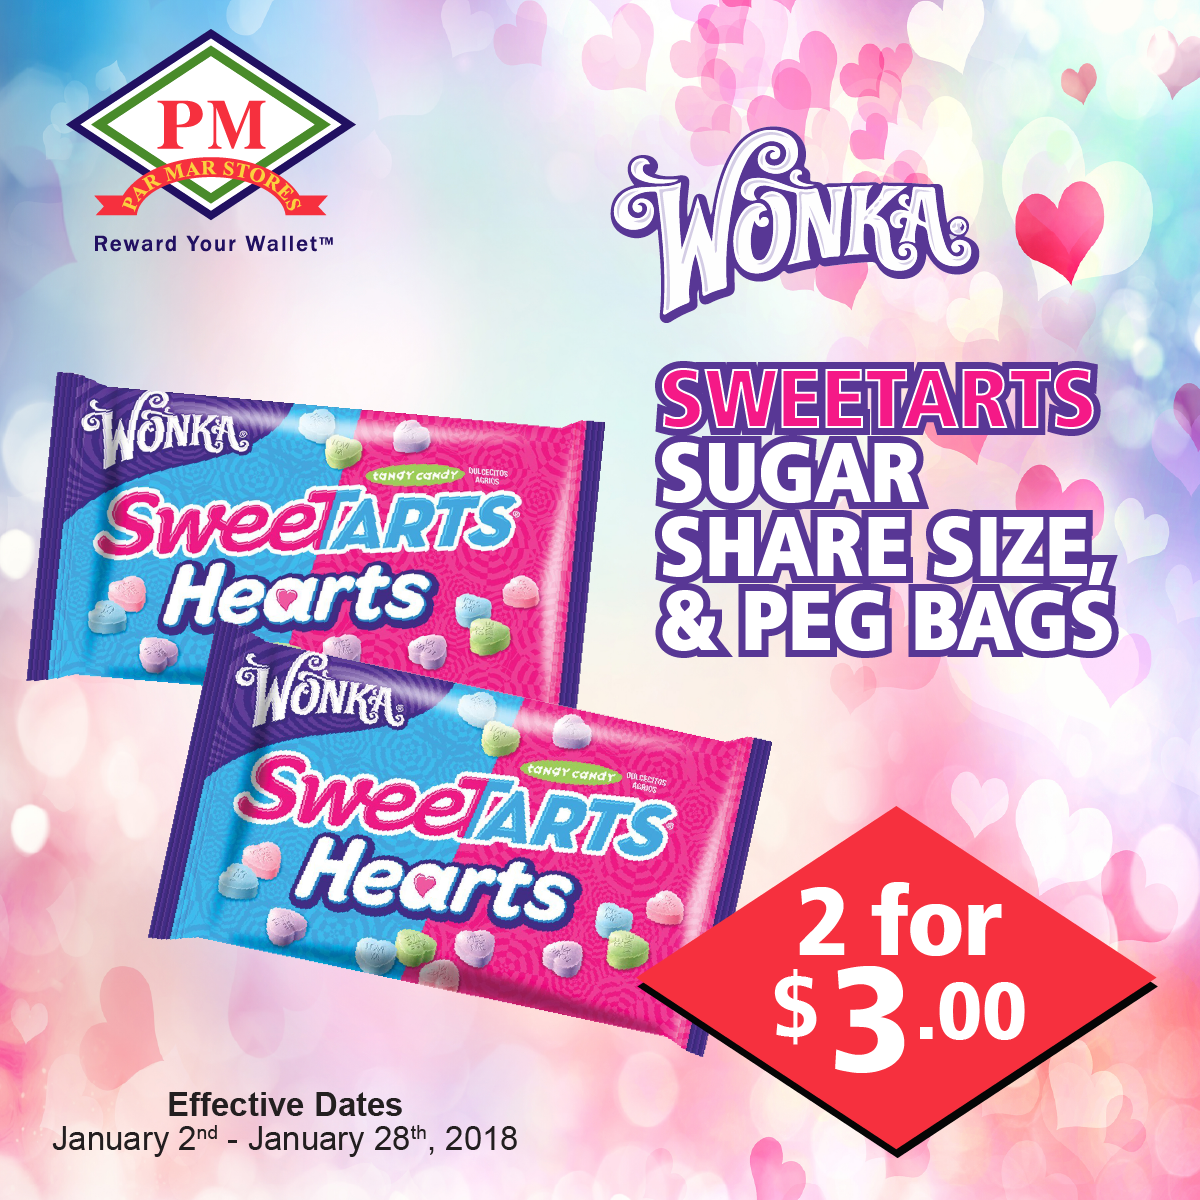 wonka sweet hearts